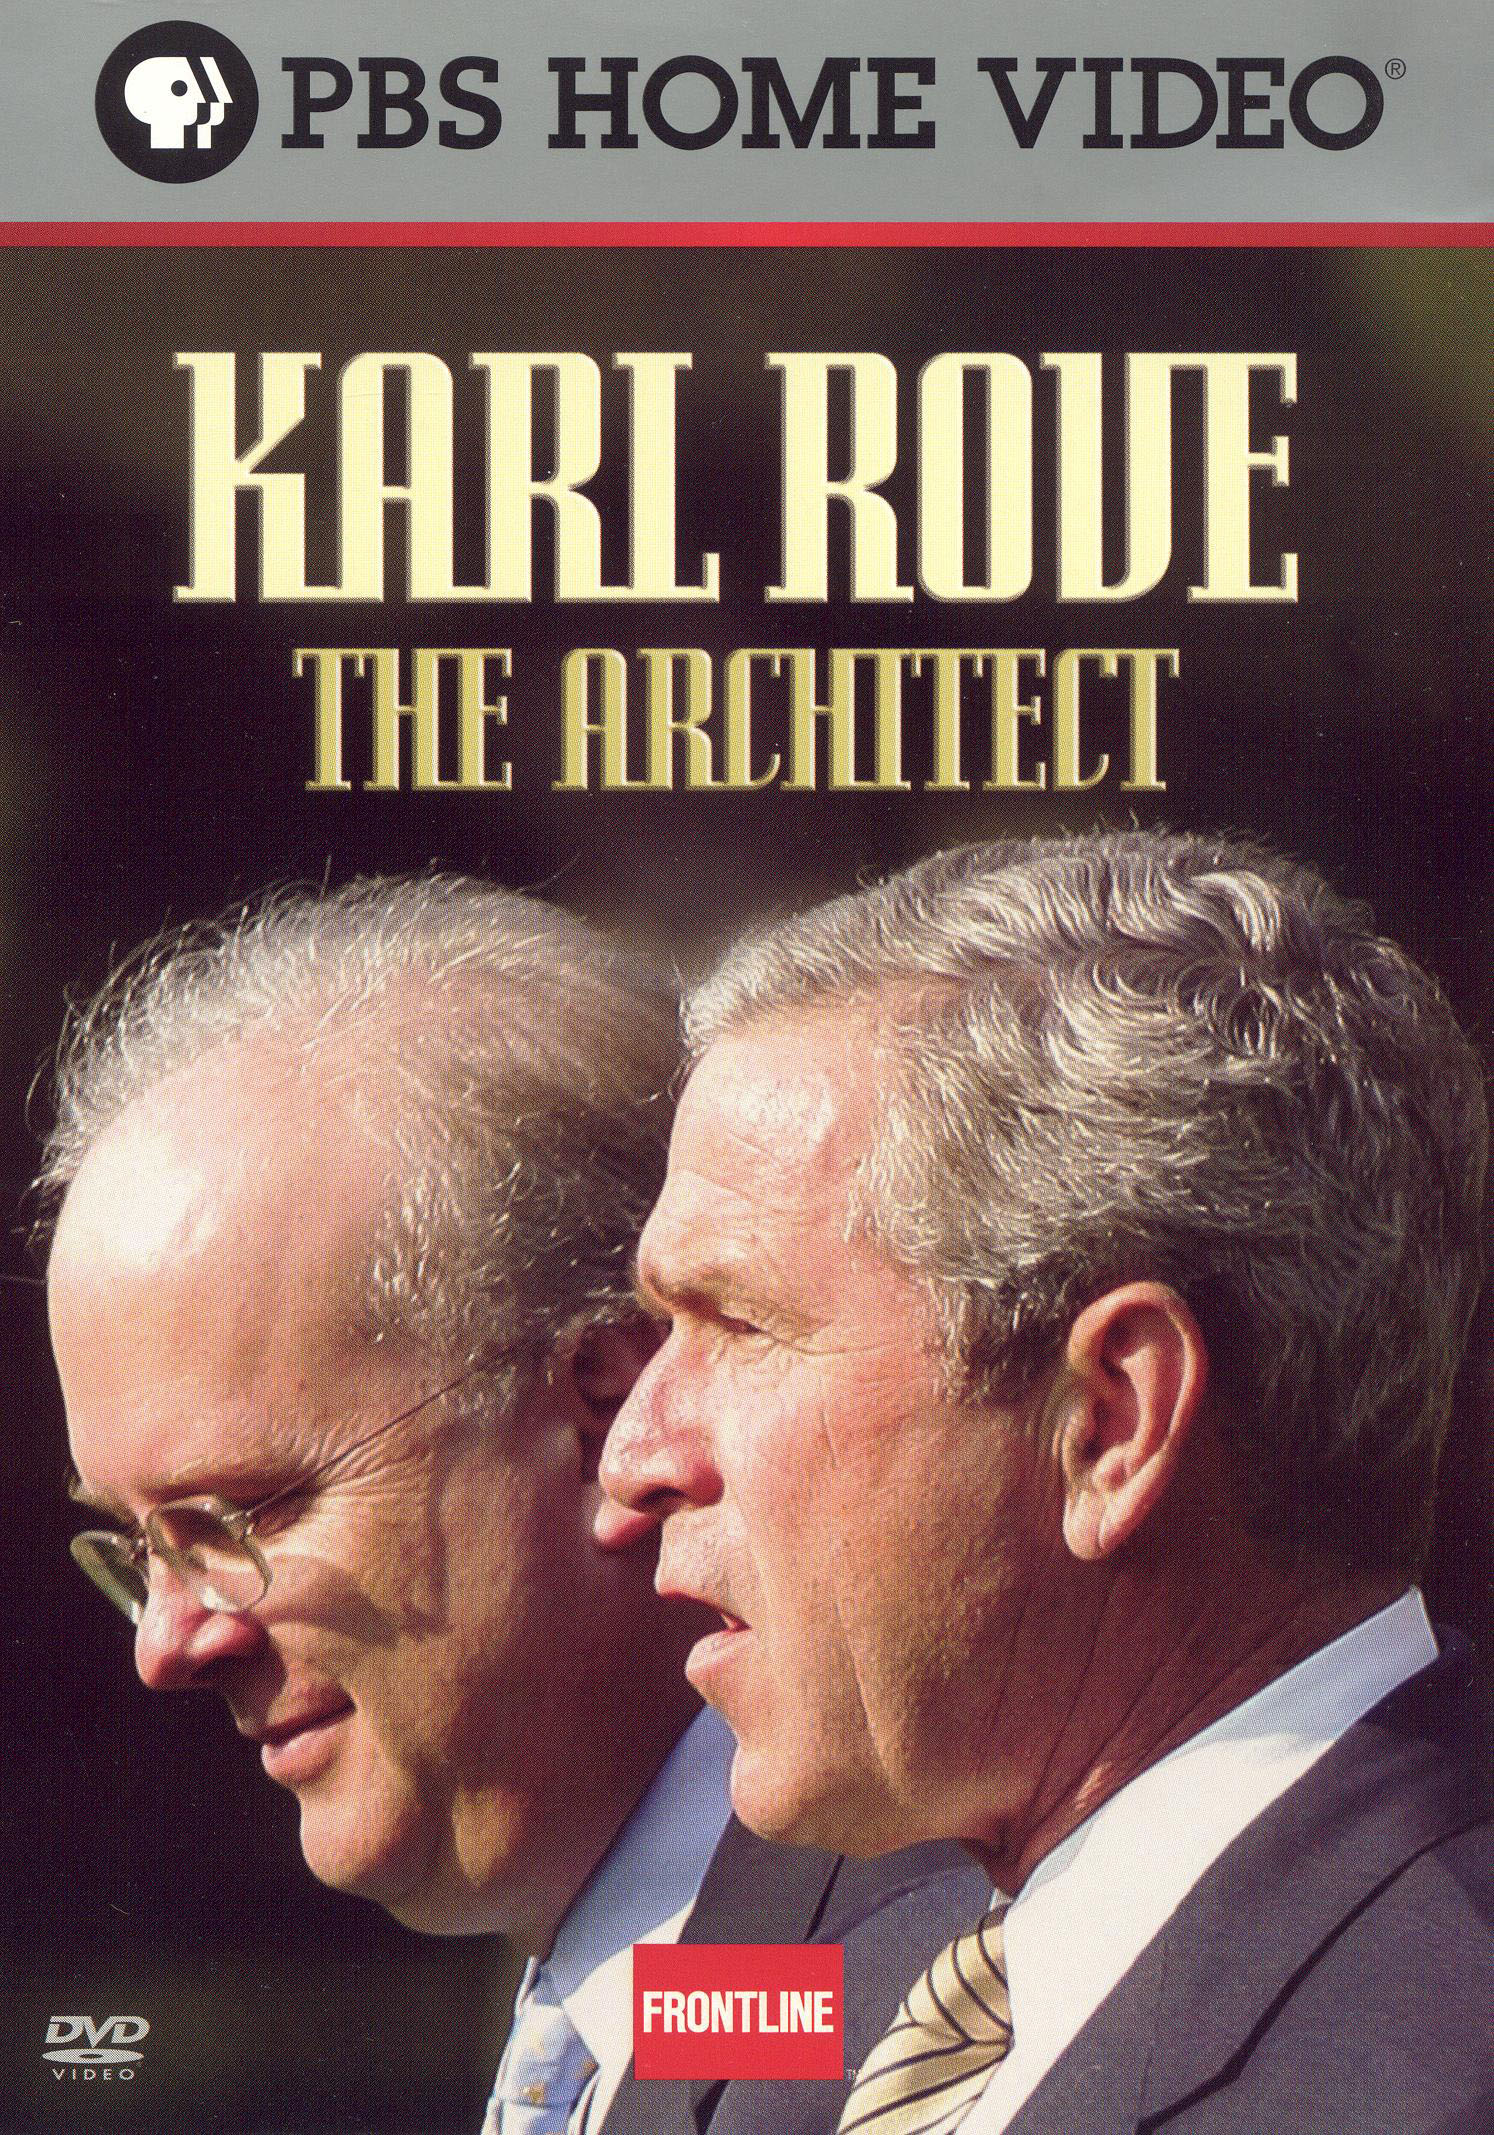 Frontline: Karl Rove - The Architect